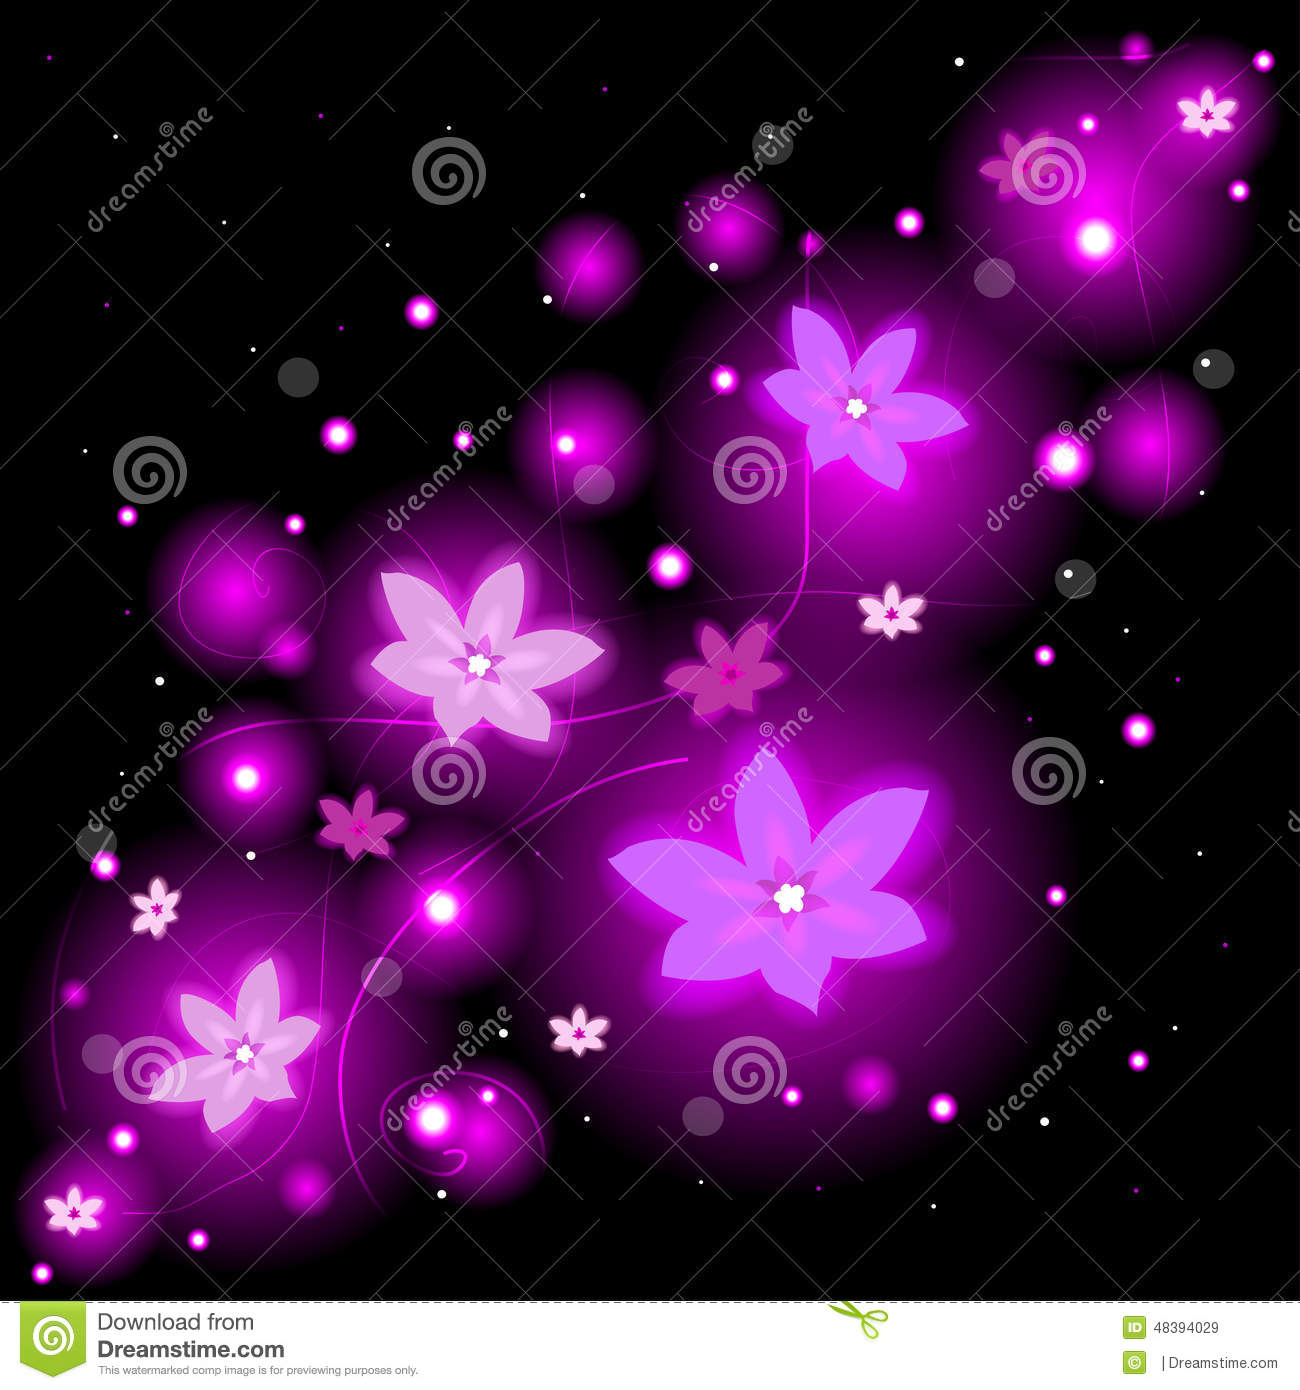 Beautiful Background With Glowing Flowers And Sparkles Stock Vector ...